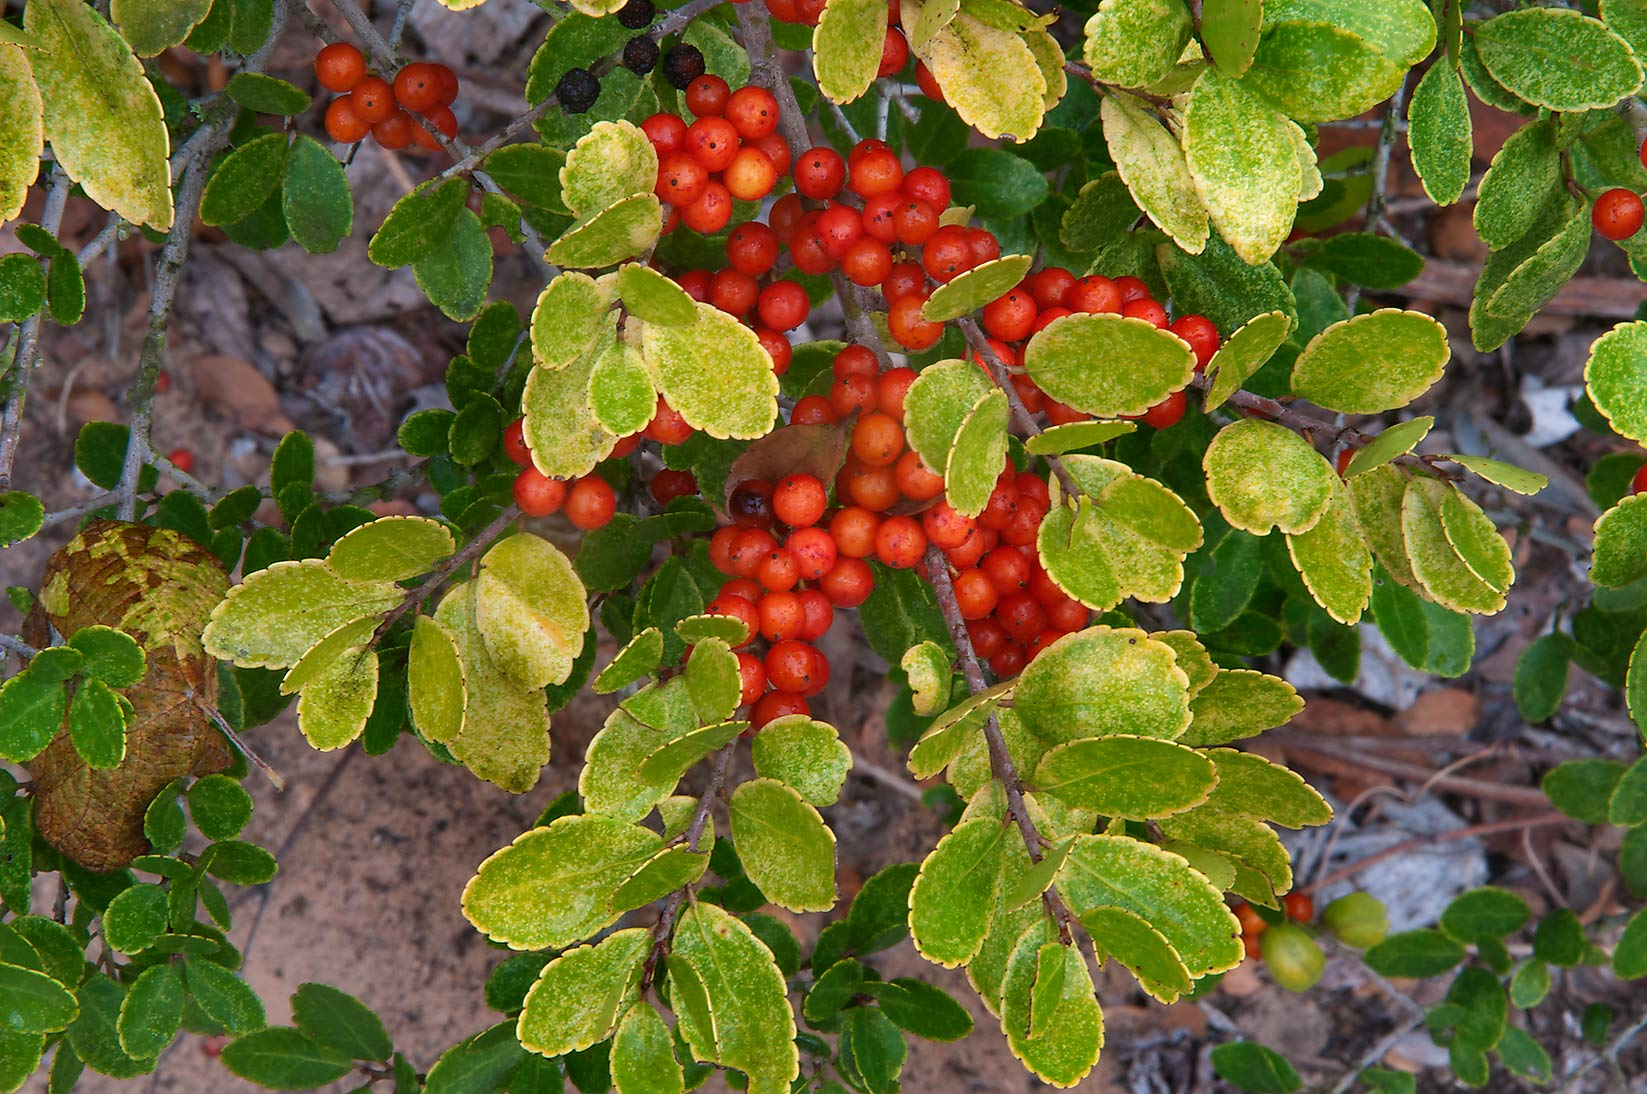 Berries of yaupon holly in Washington-on-the-Brazos State Historic Site. Washington, Texas